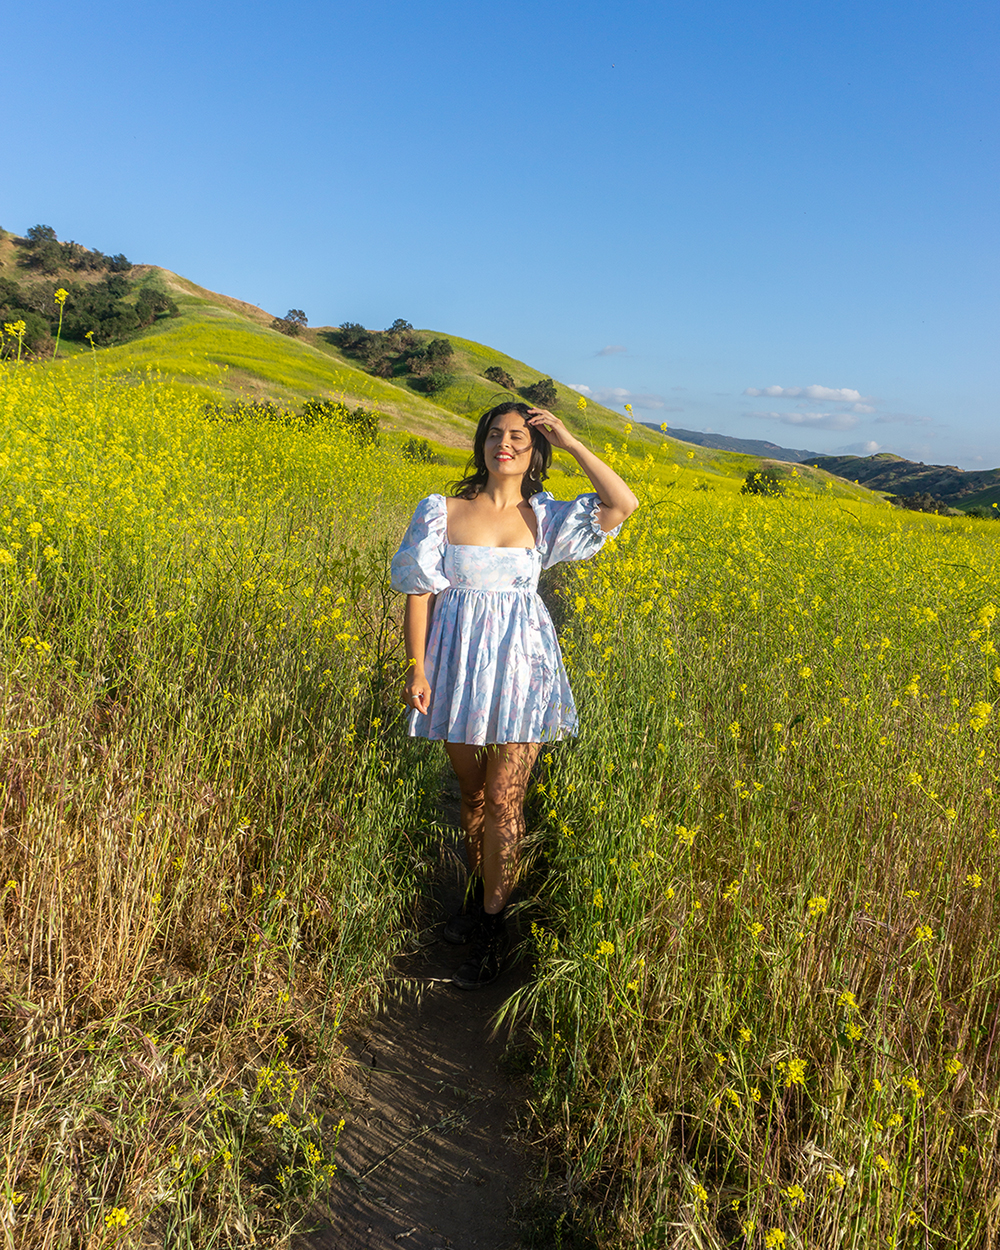 woman at chino hills superbloom yellow wildflowers